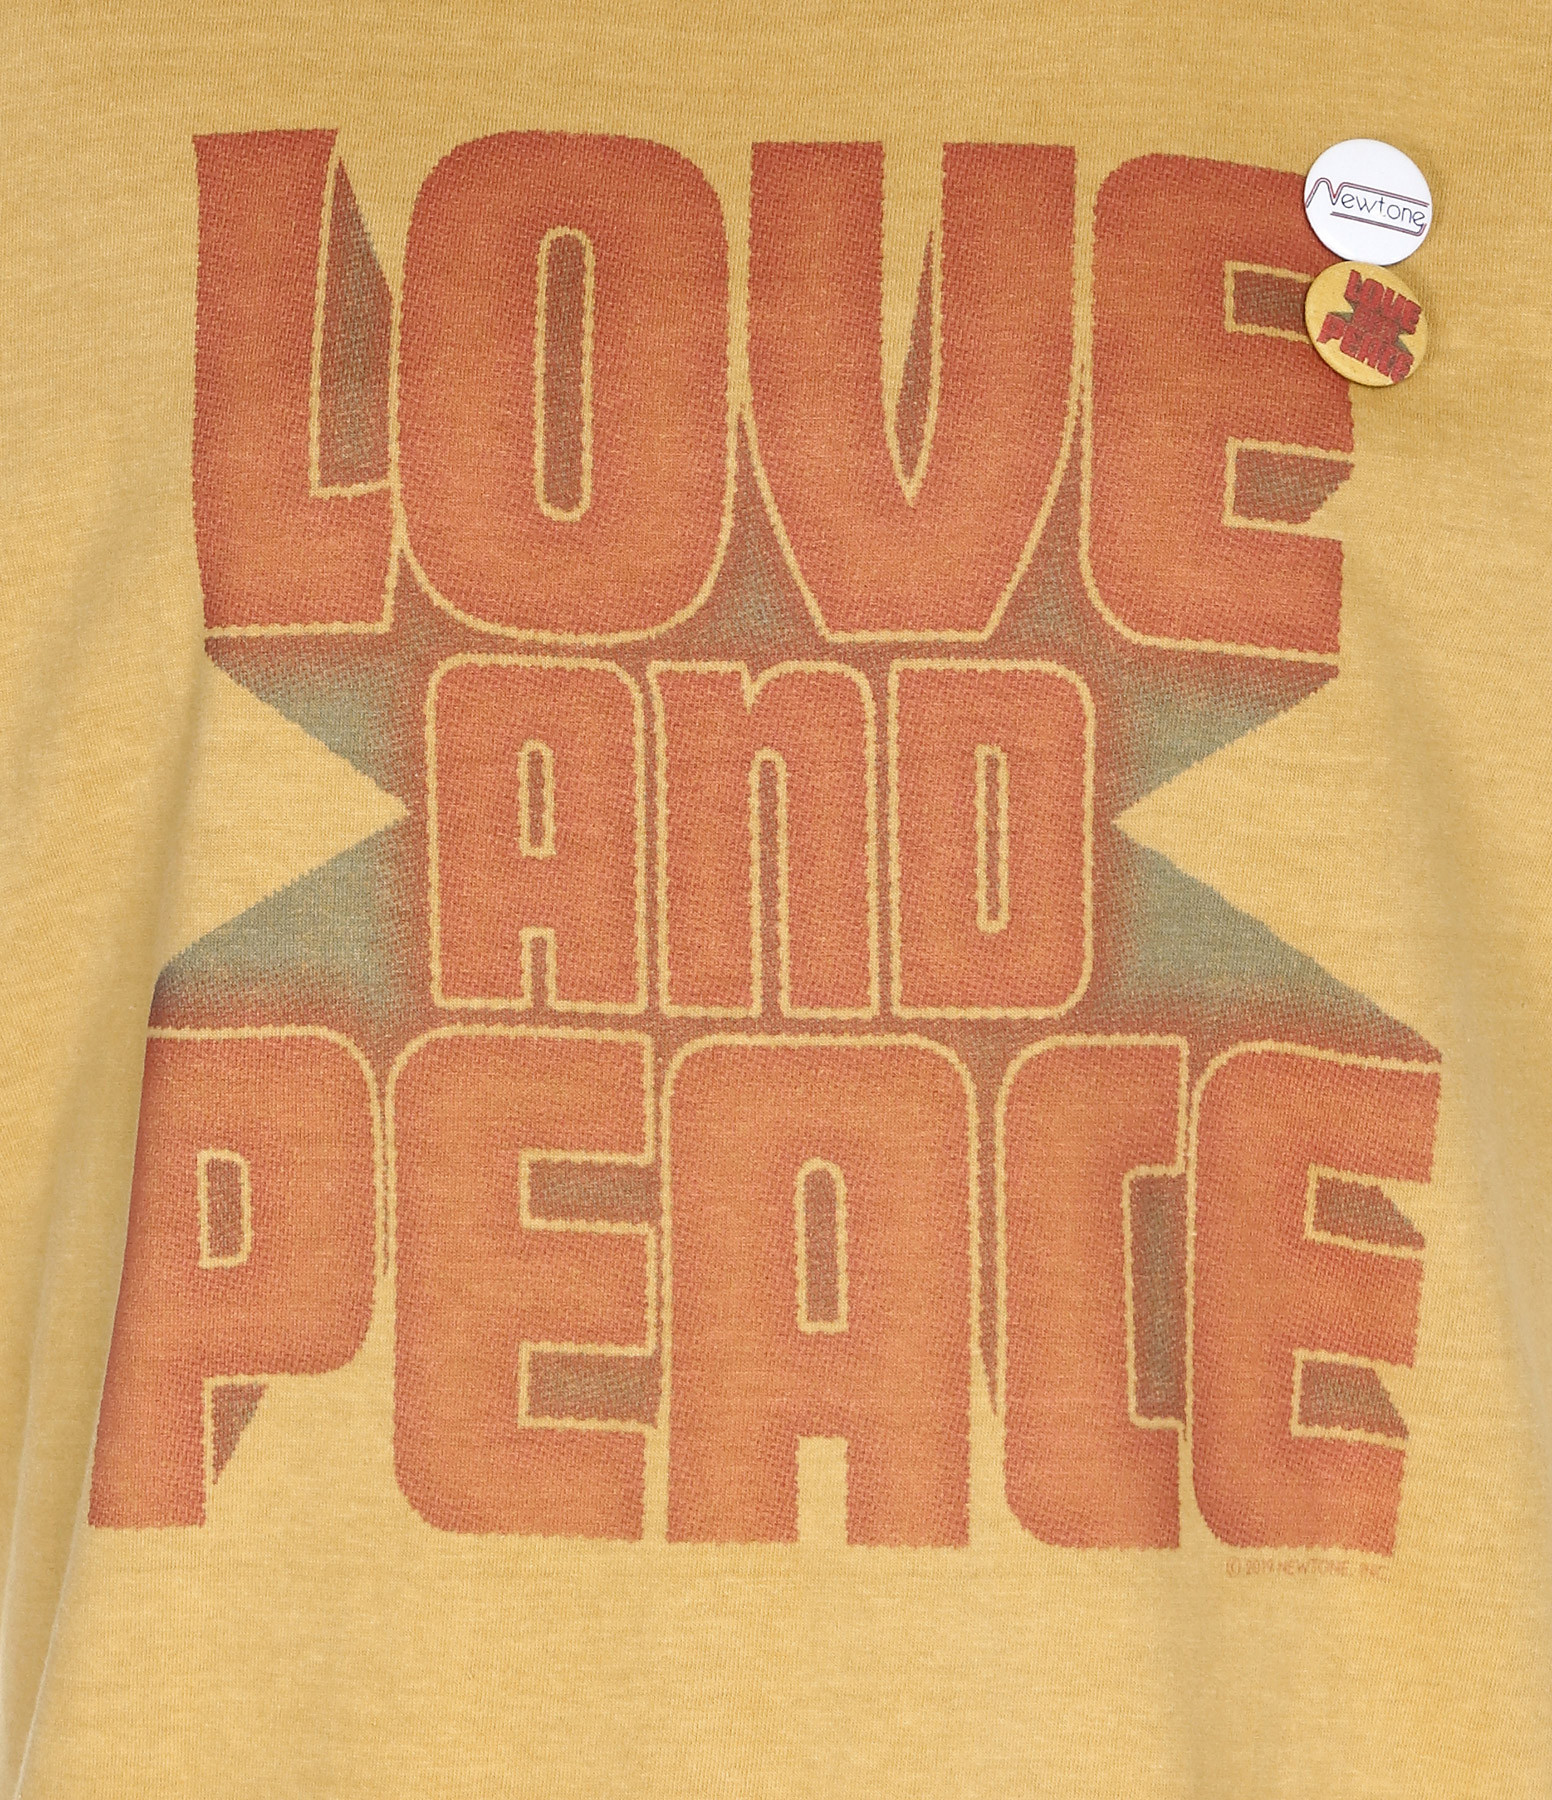 NEWTONE - Tee-shirt Peace and Love Coton Moutarde